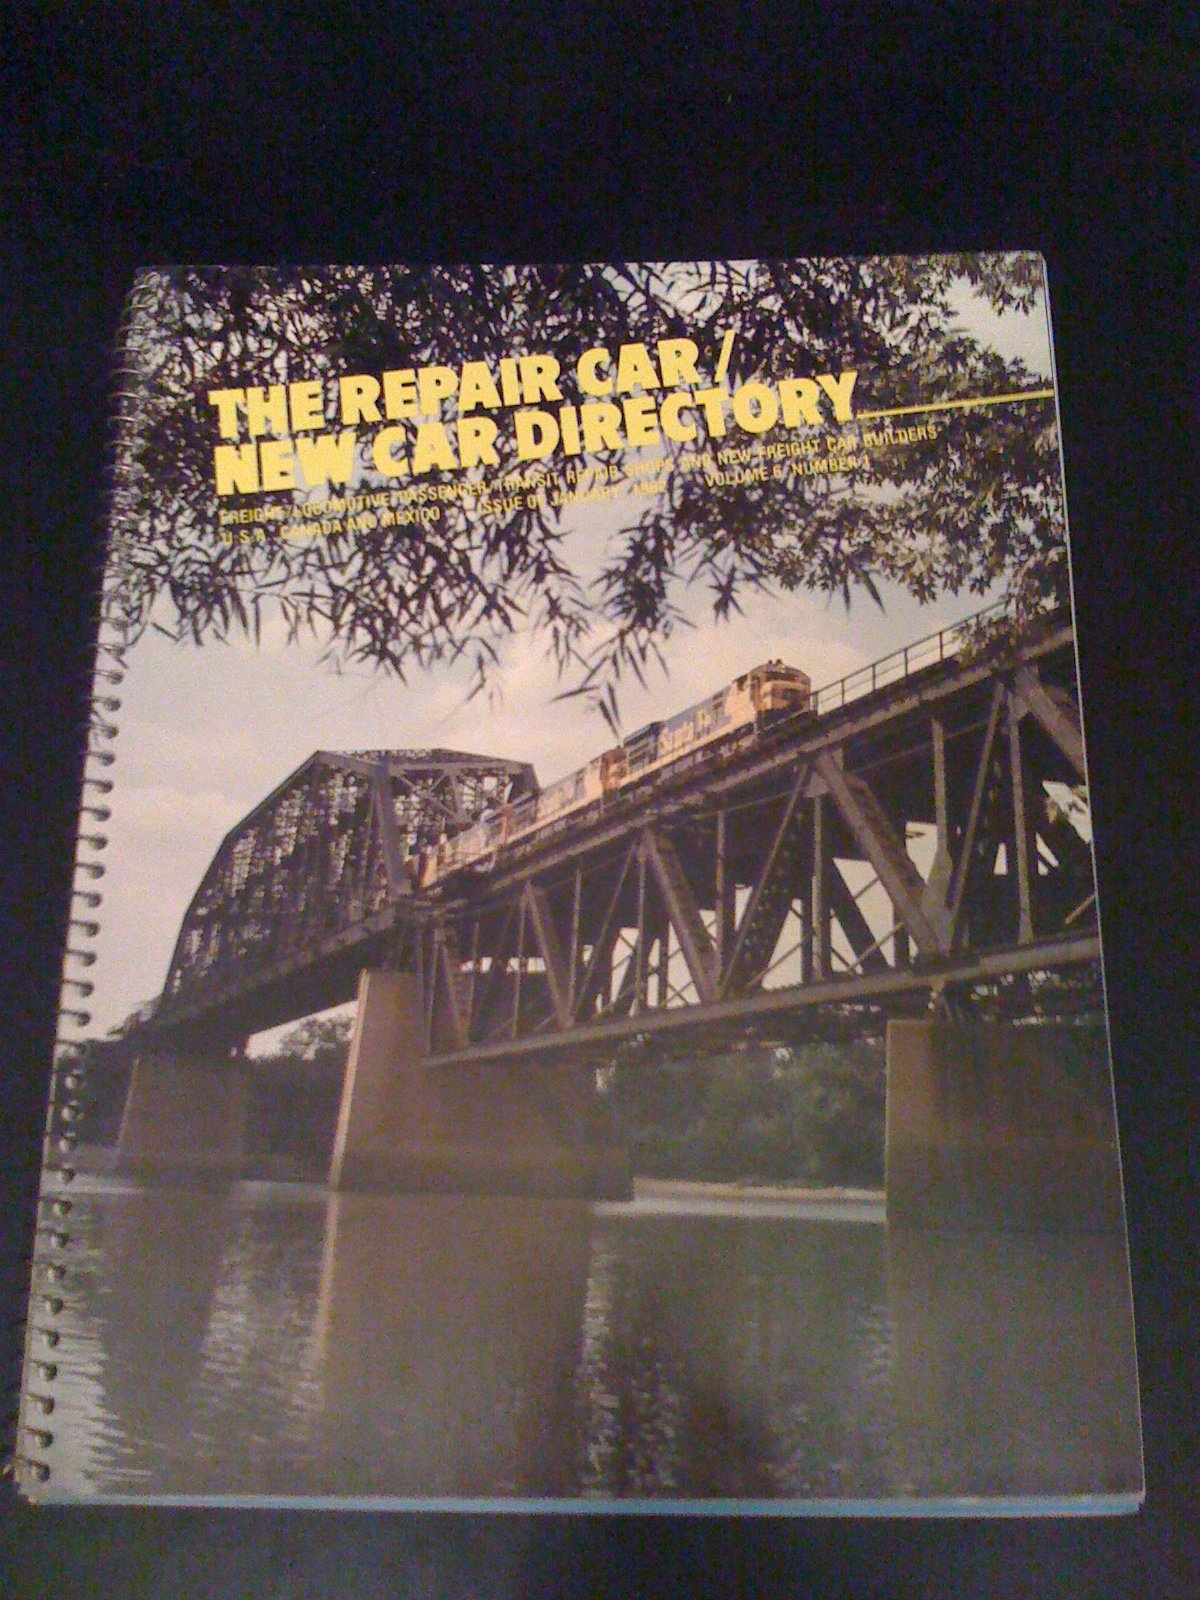 The Repair Car New Car Directory for Freight Locomotive